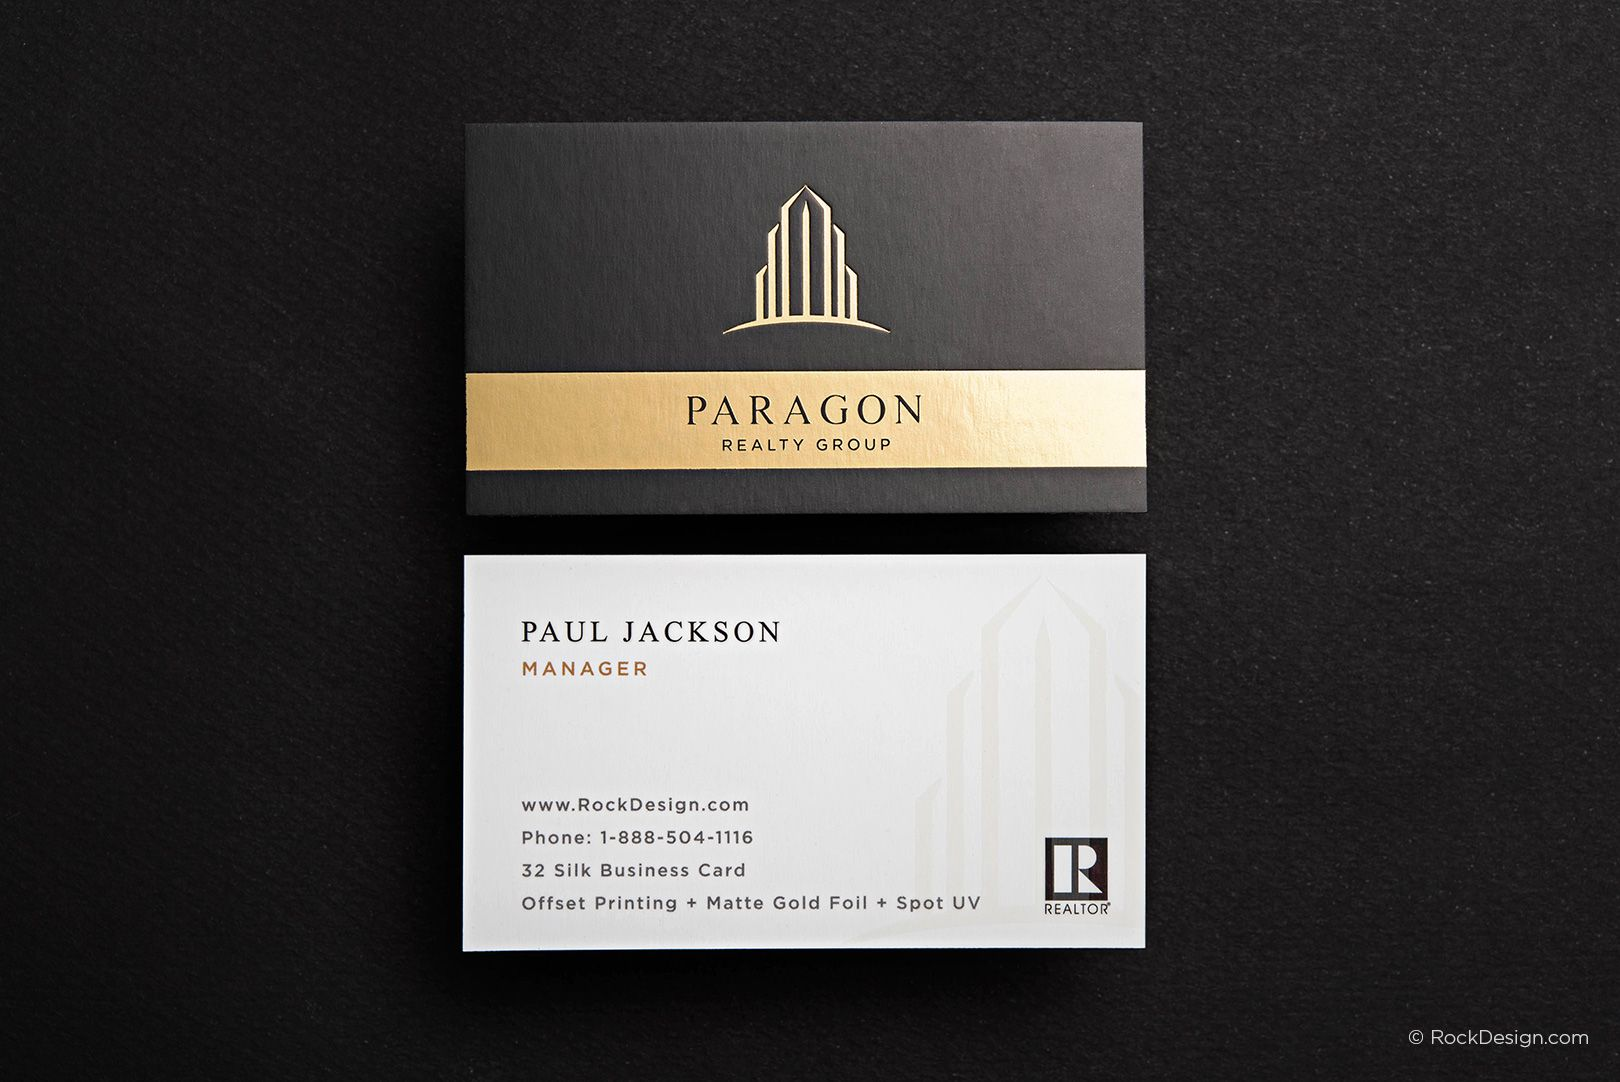 Modern realtor silk business card template with foil and spot uv ...